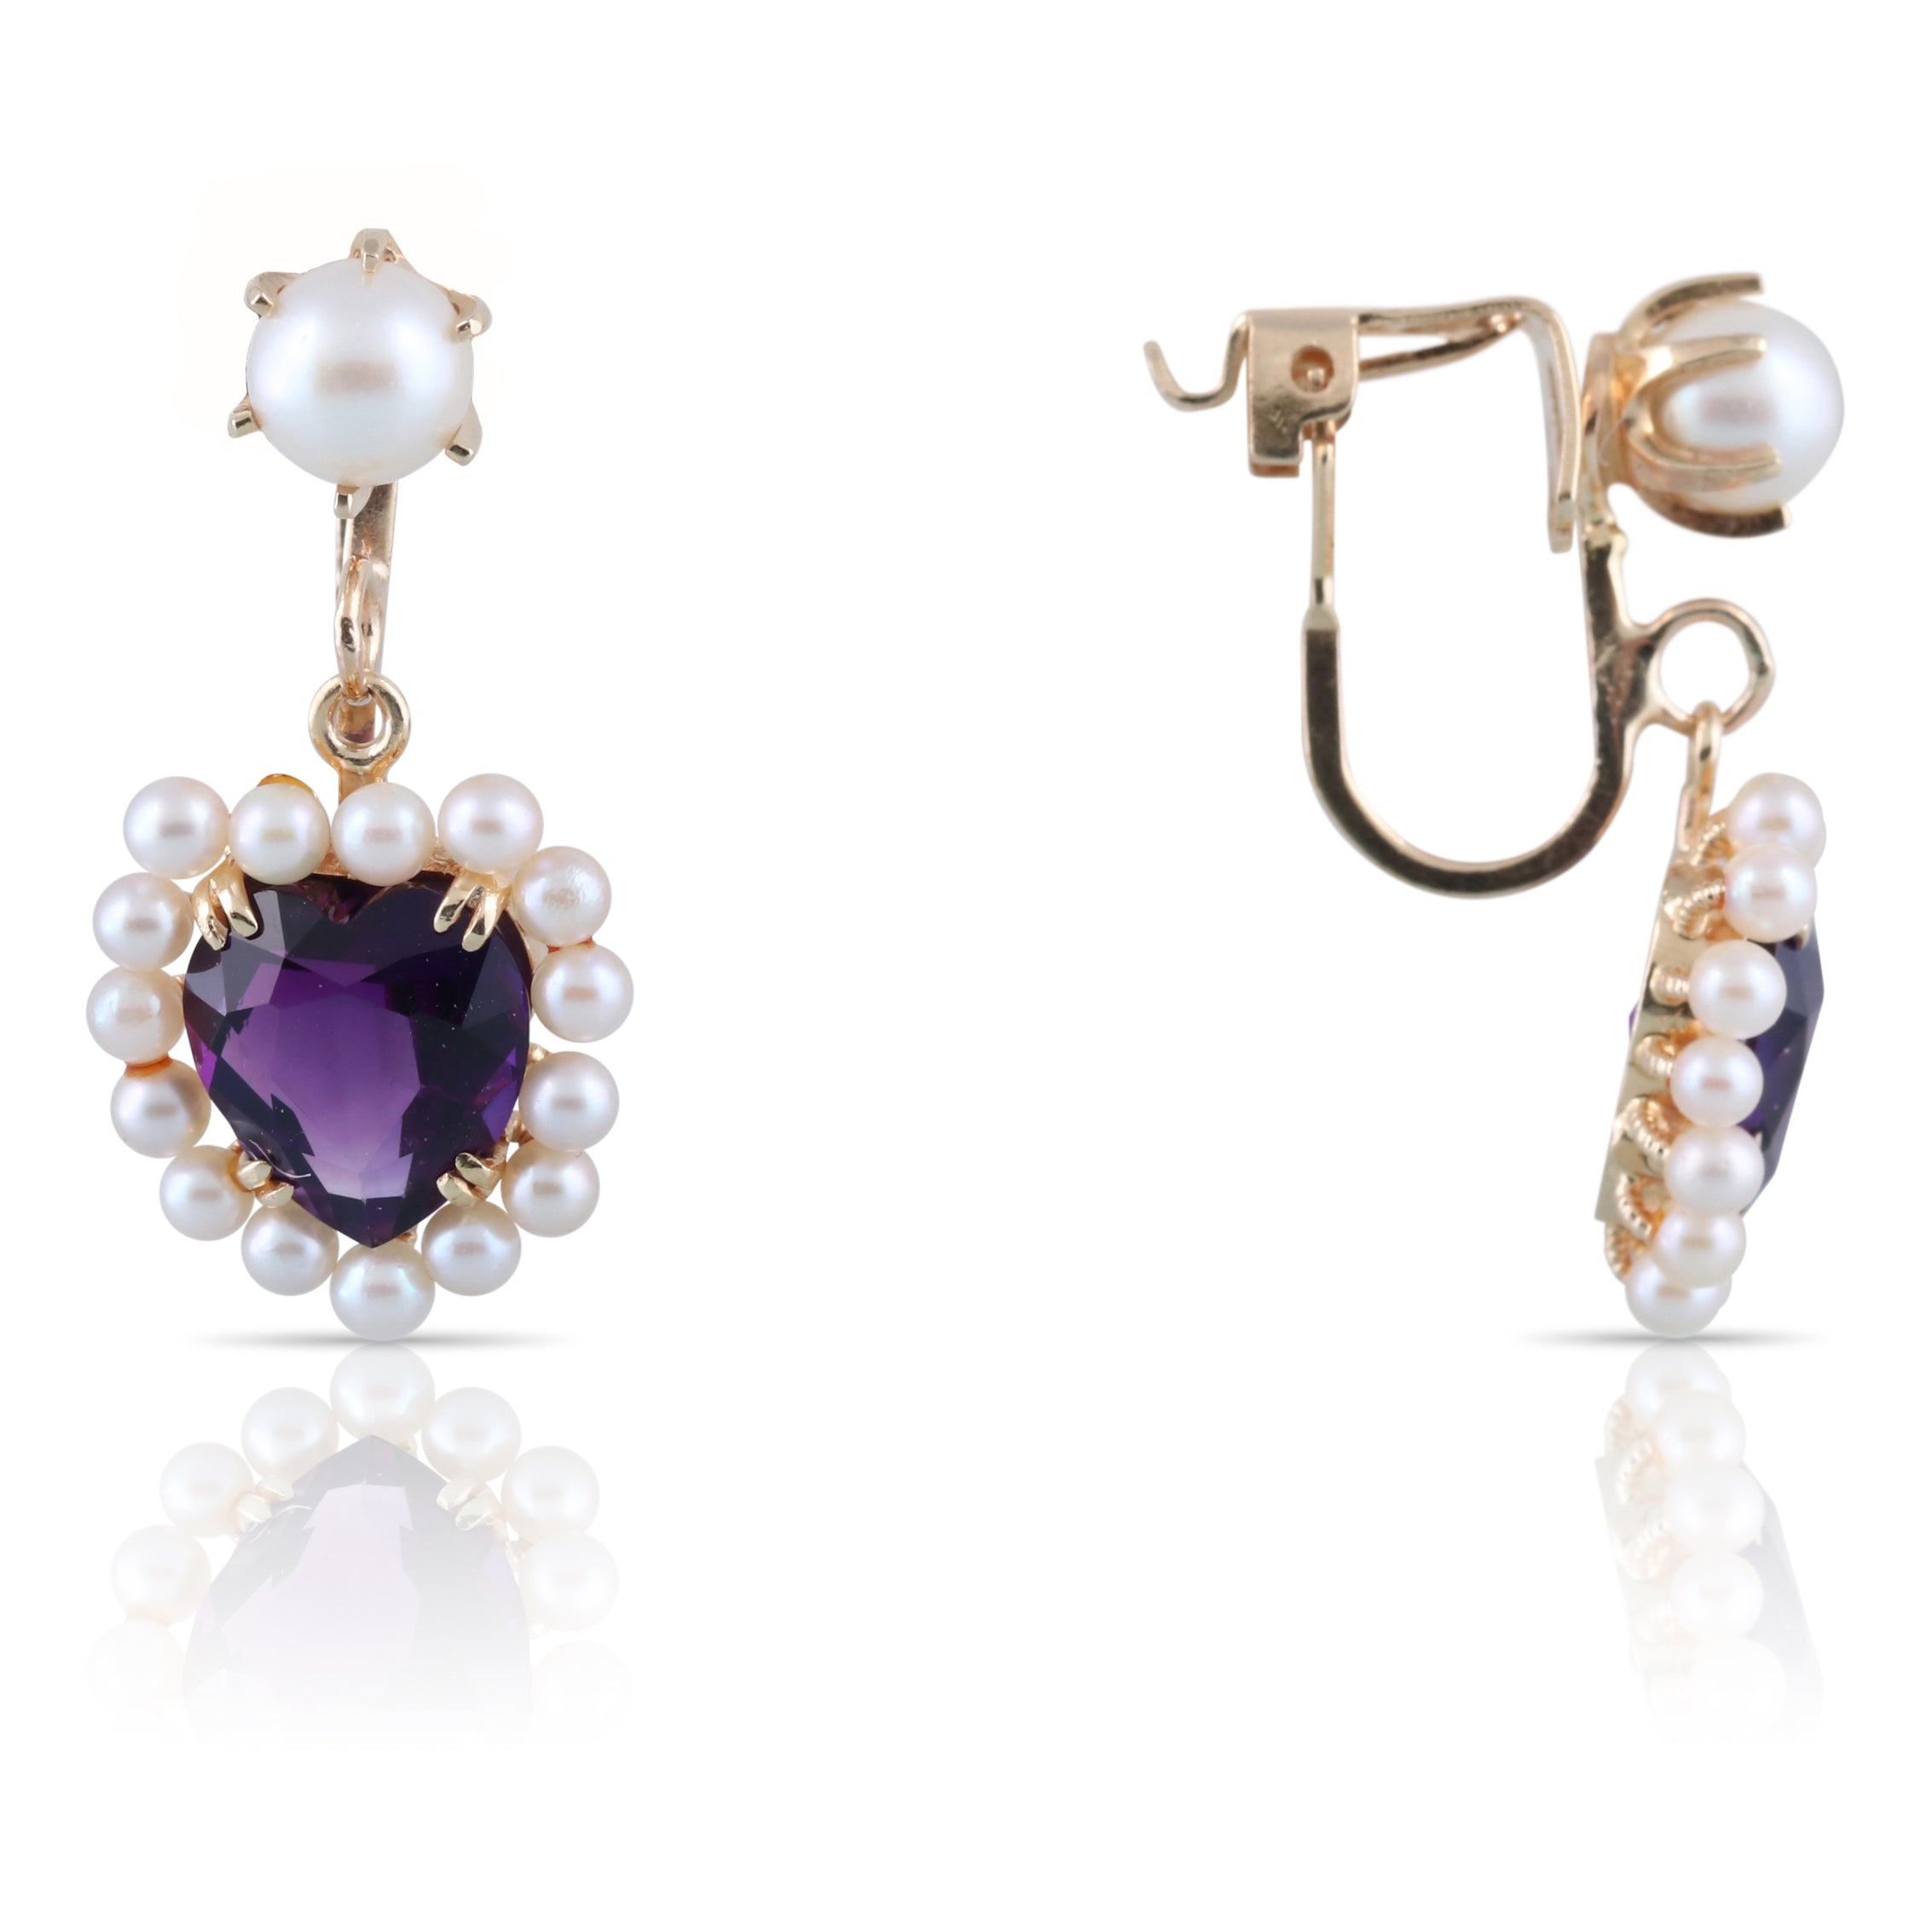 Amethyst Heart Earrings | The Dominic